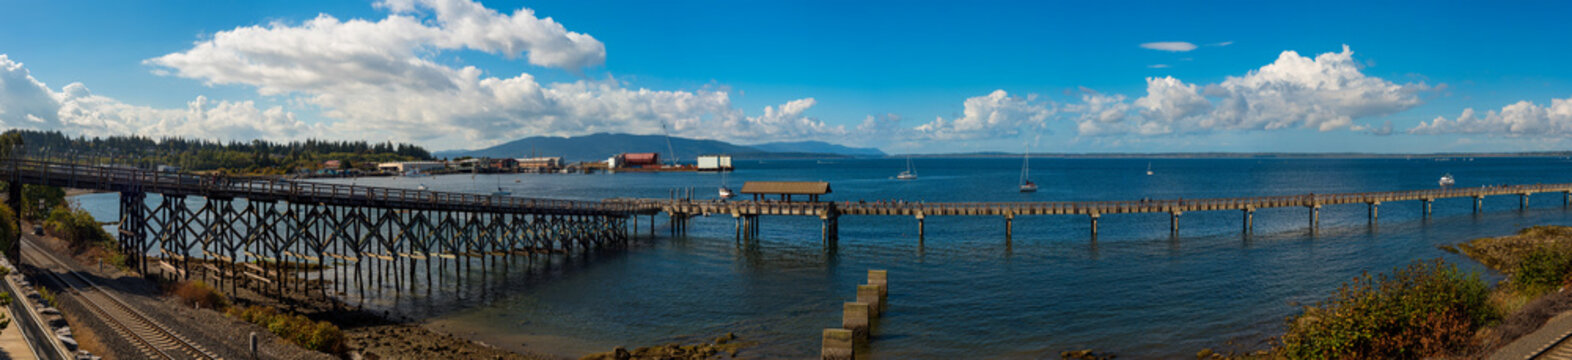 Panorama of the Pier at Bellingham, Washinton